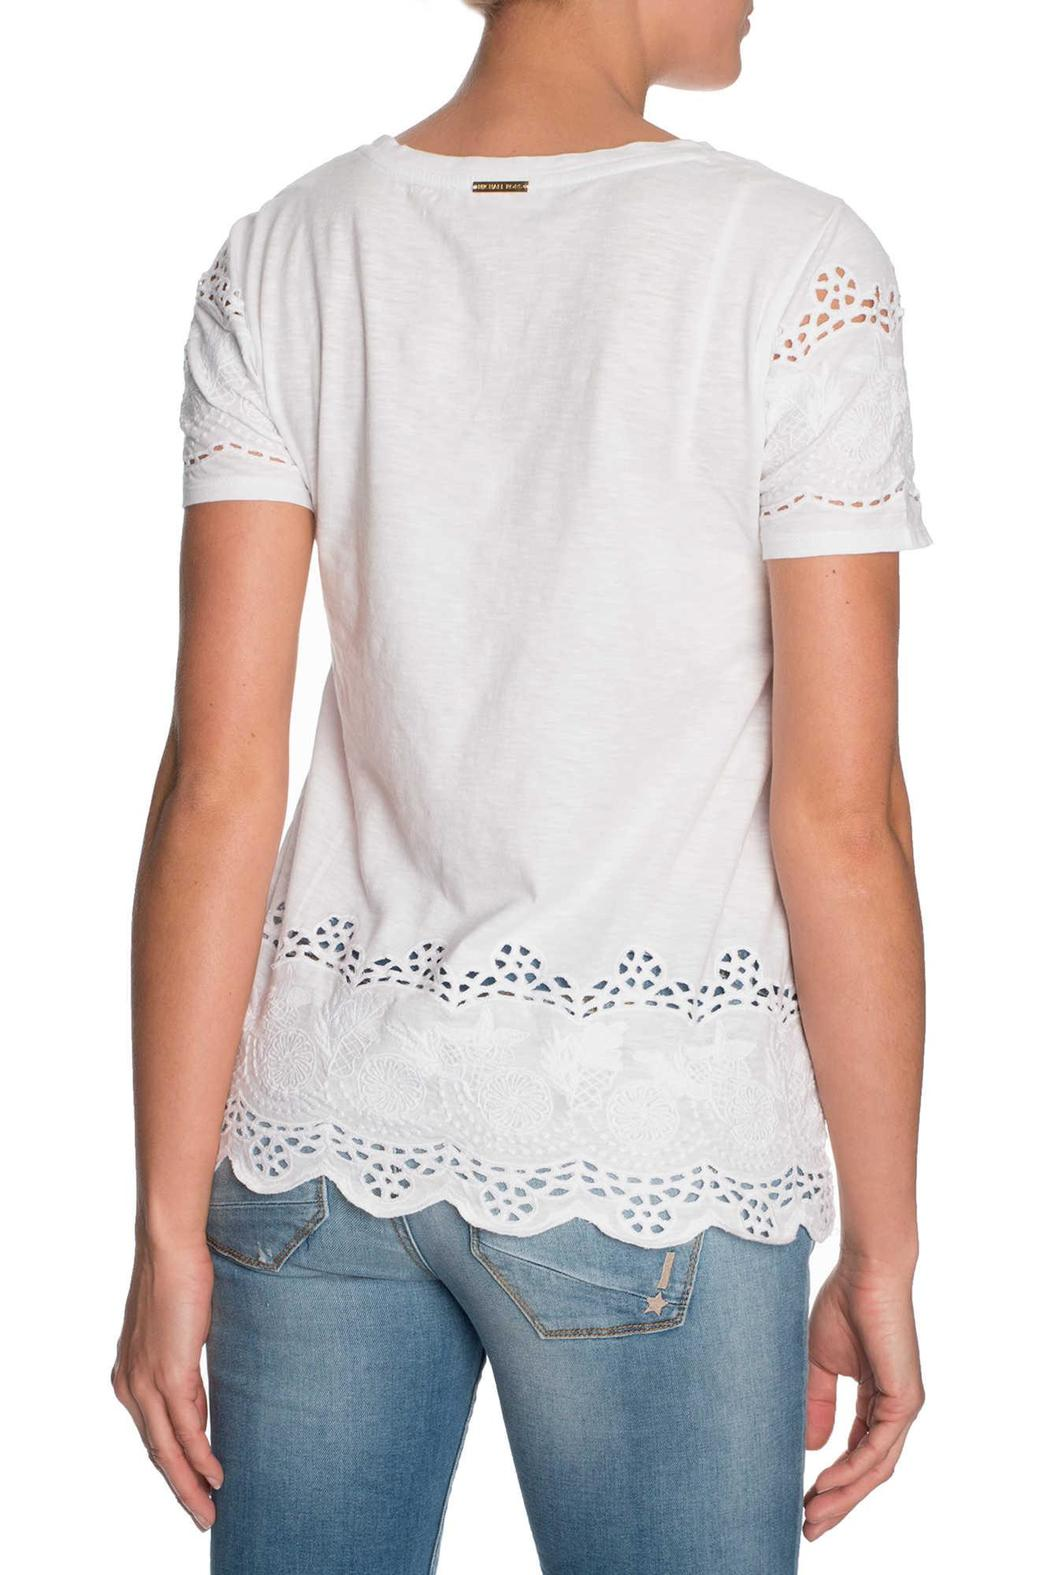 Michael by Michael Kors Lace Cutout Shirt - Front Full Image